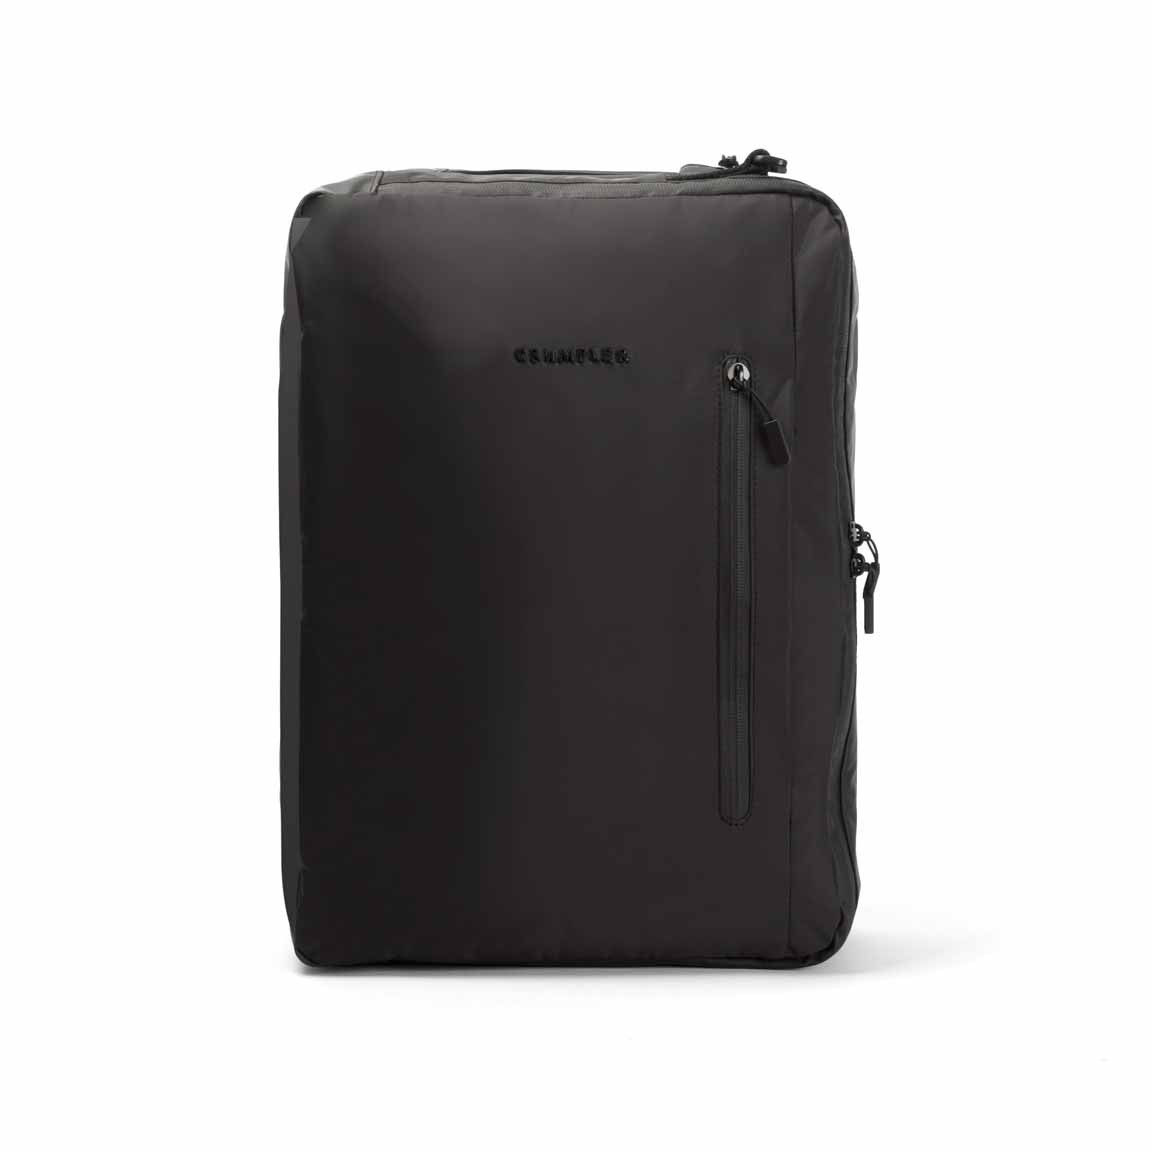 "Crumpler Director's Cut Backpack 15"" - dull black"